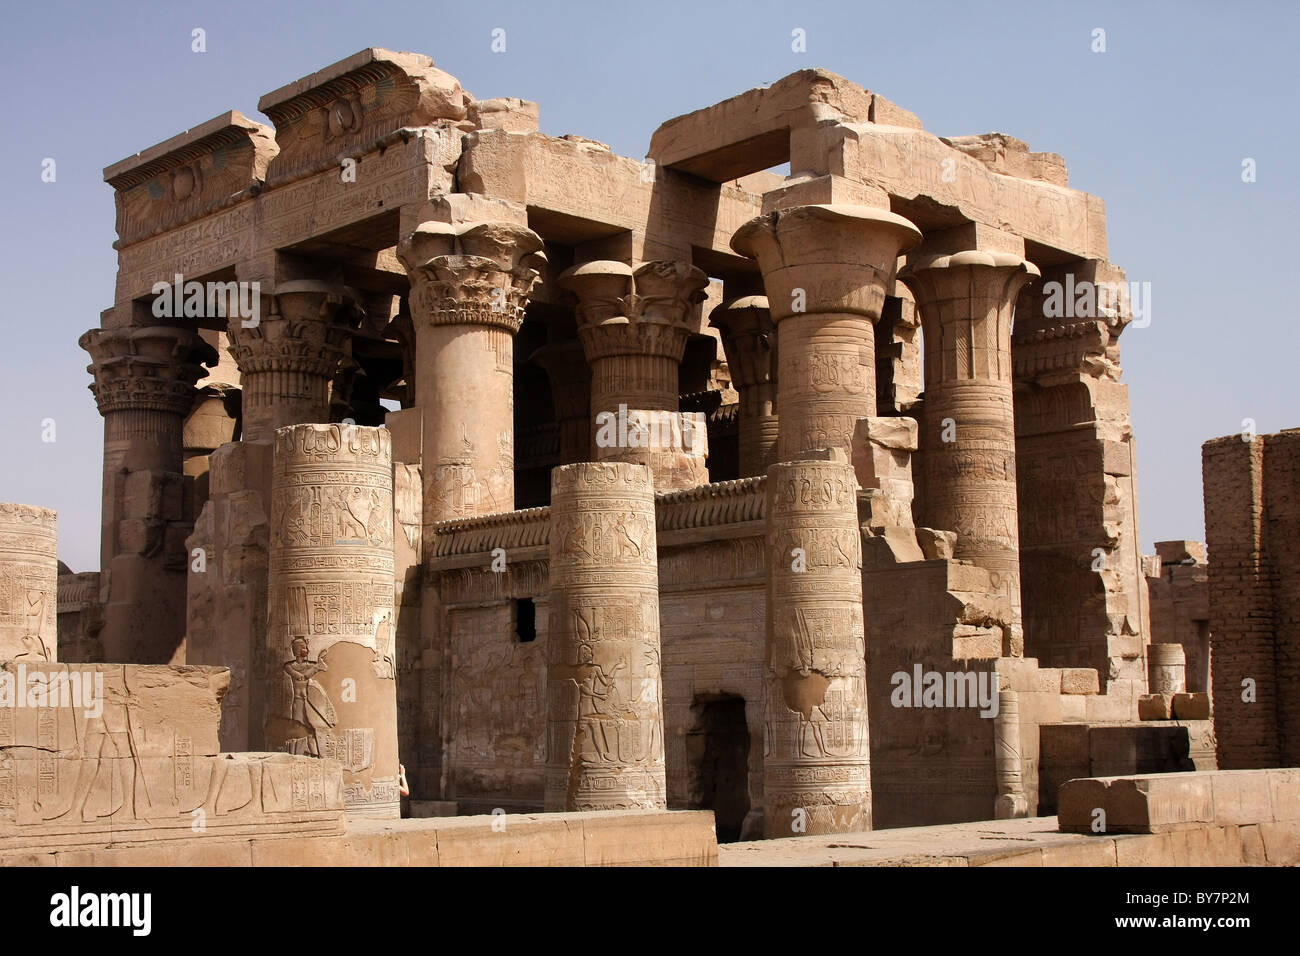 The temple at Kom Ombo, on the Nile, Egypt, dedicated to Sobek, the crocodile god. Stock Photo